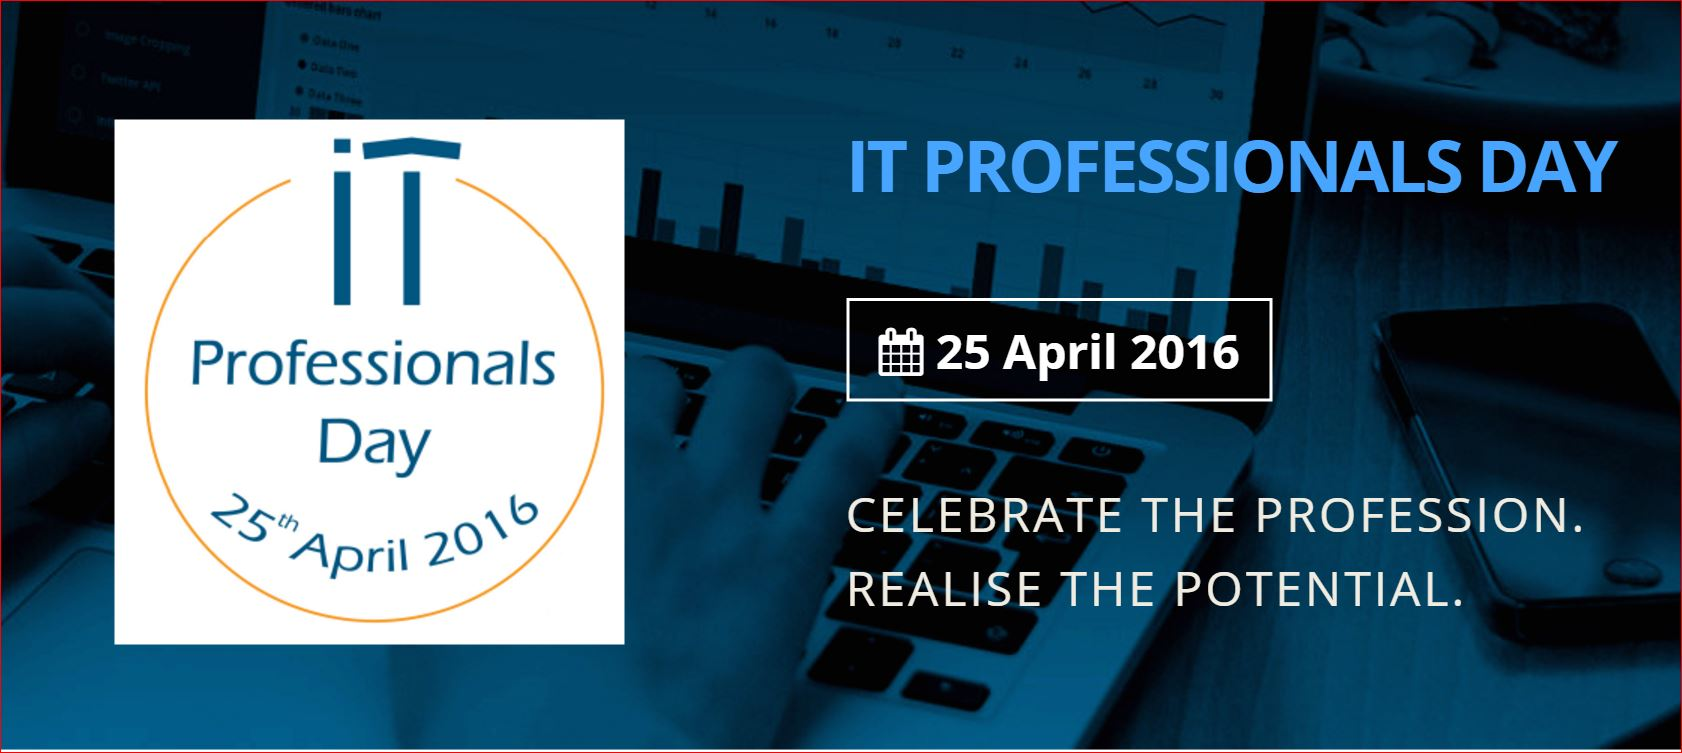 it professionals day